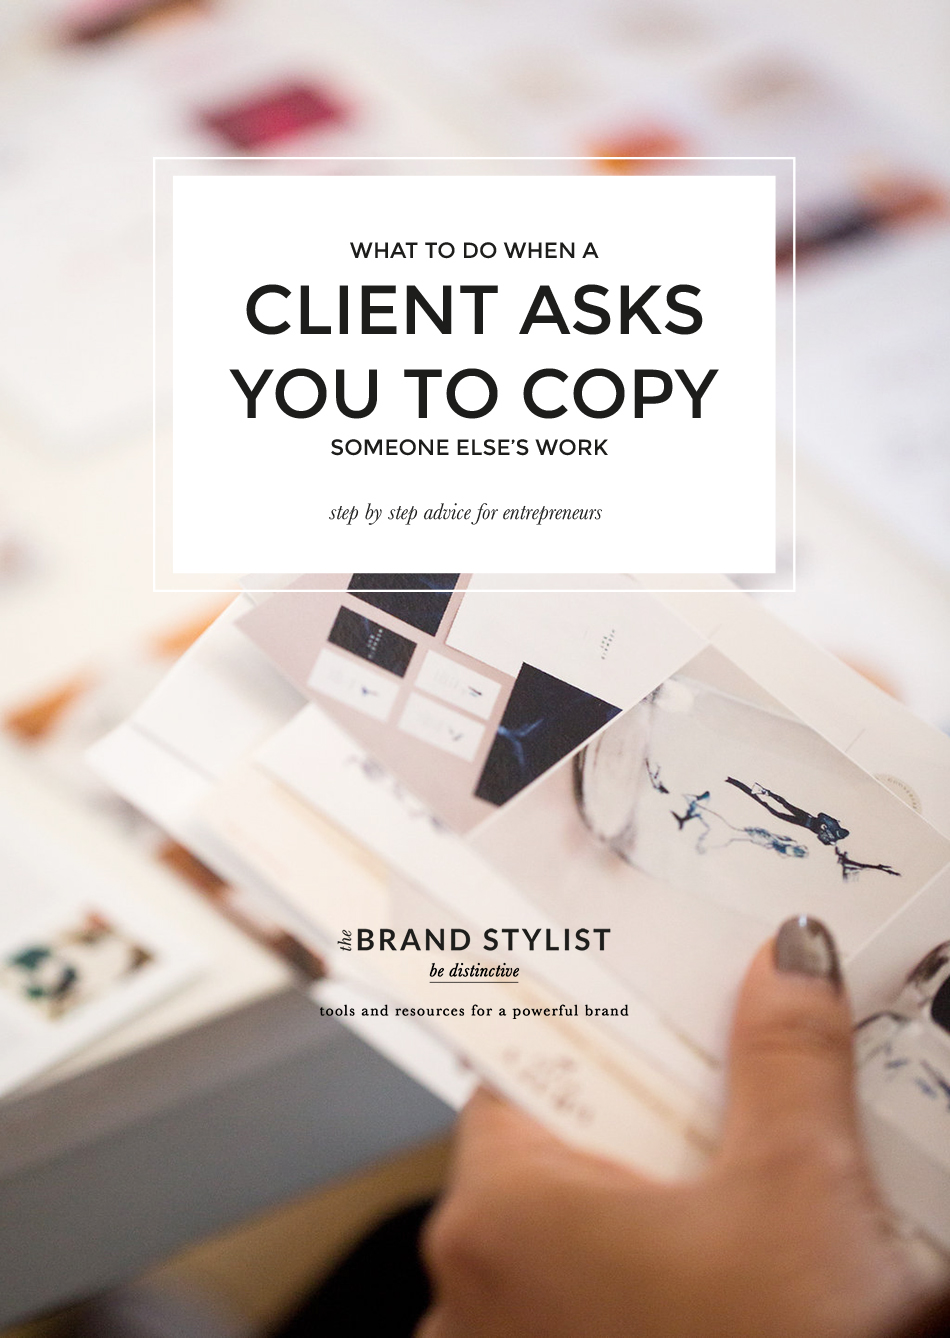 how to handle a client asking you to copy someone elses work